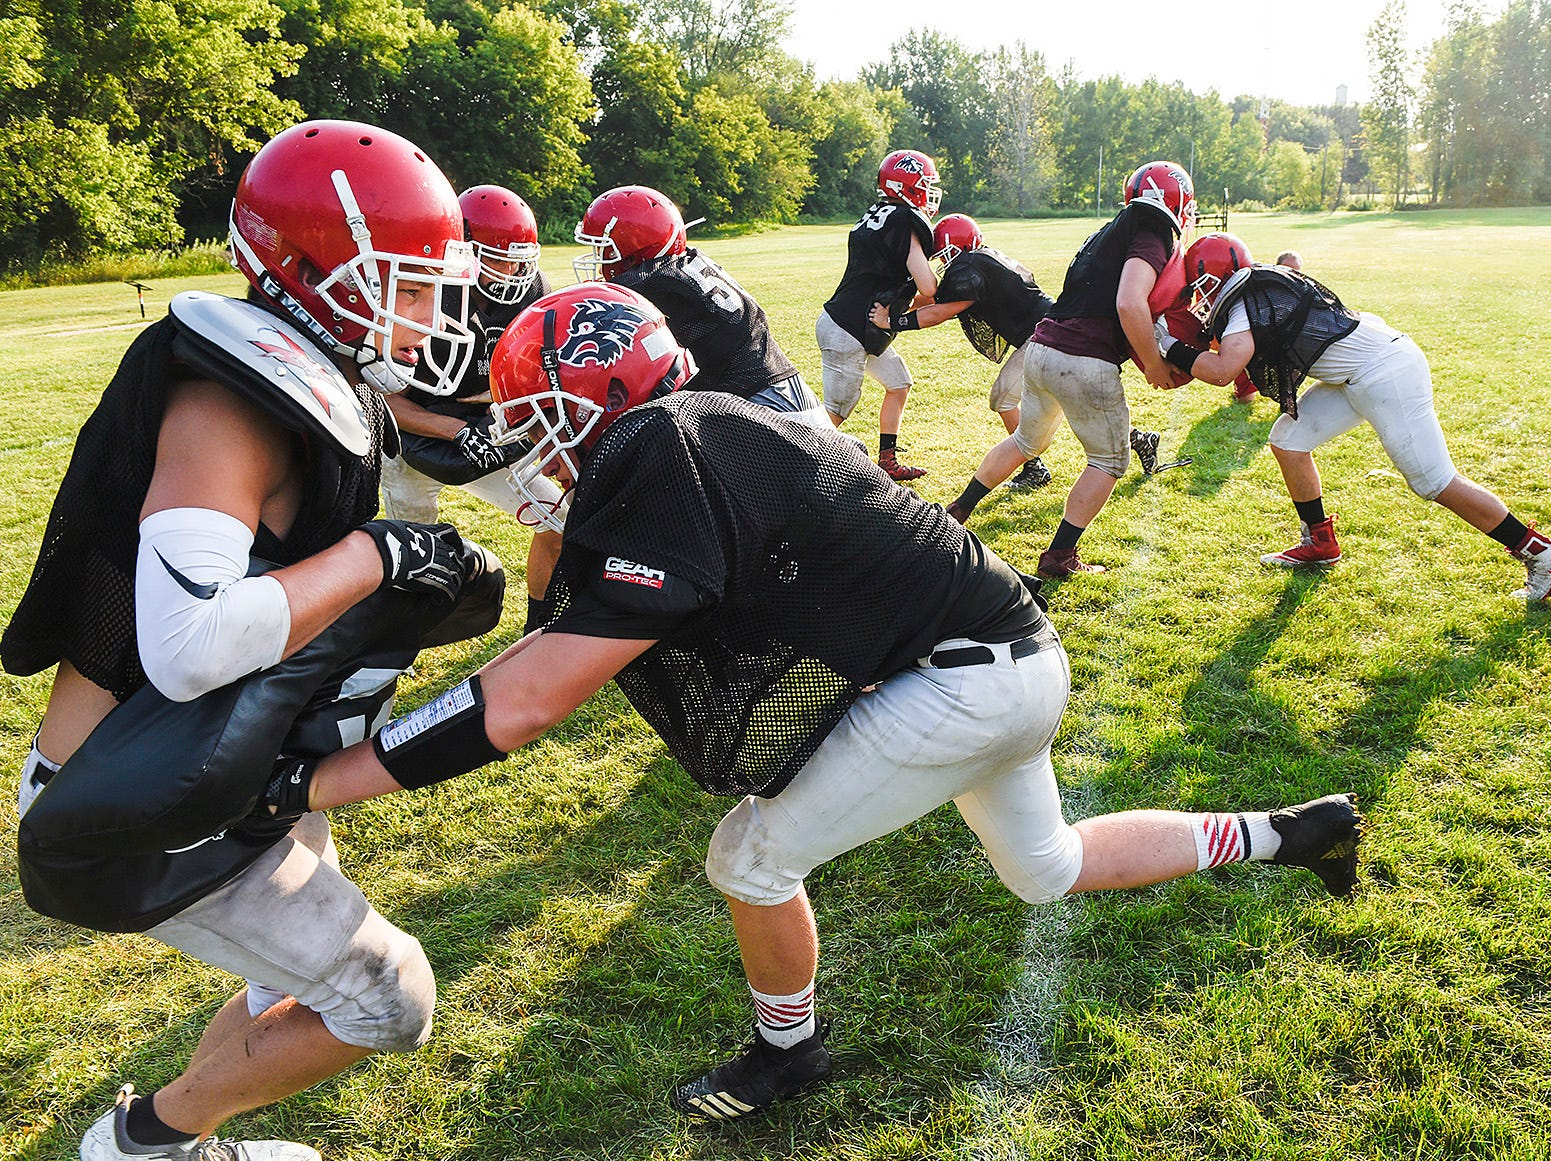 Milaca players work on backing during a drill Thursday, Aug. 16, in Milaca.